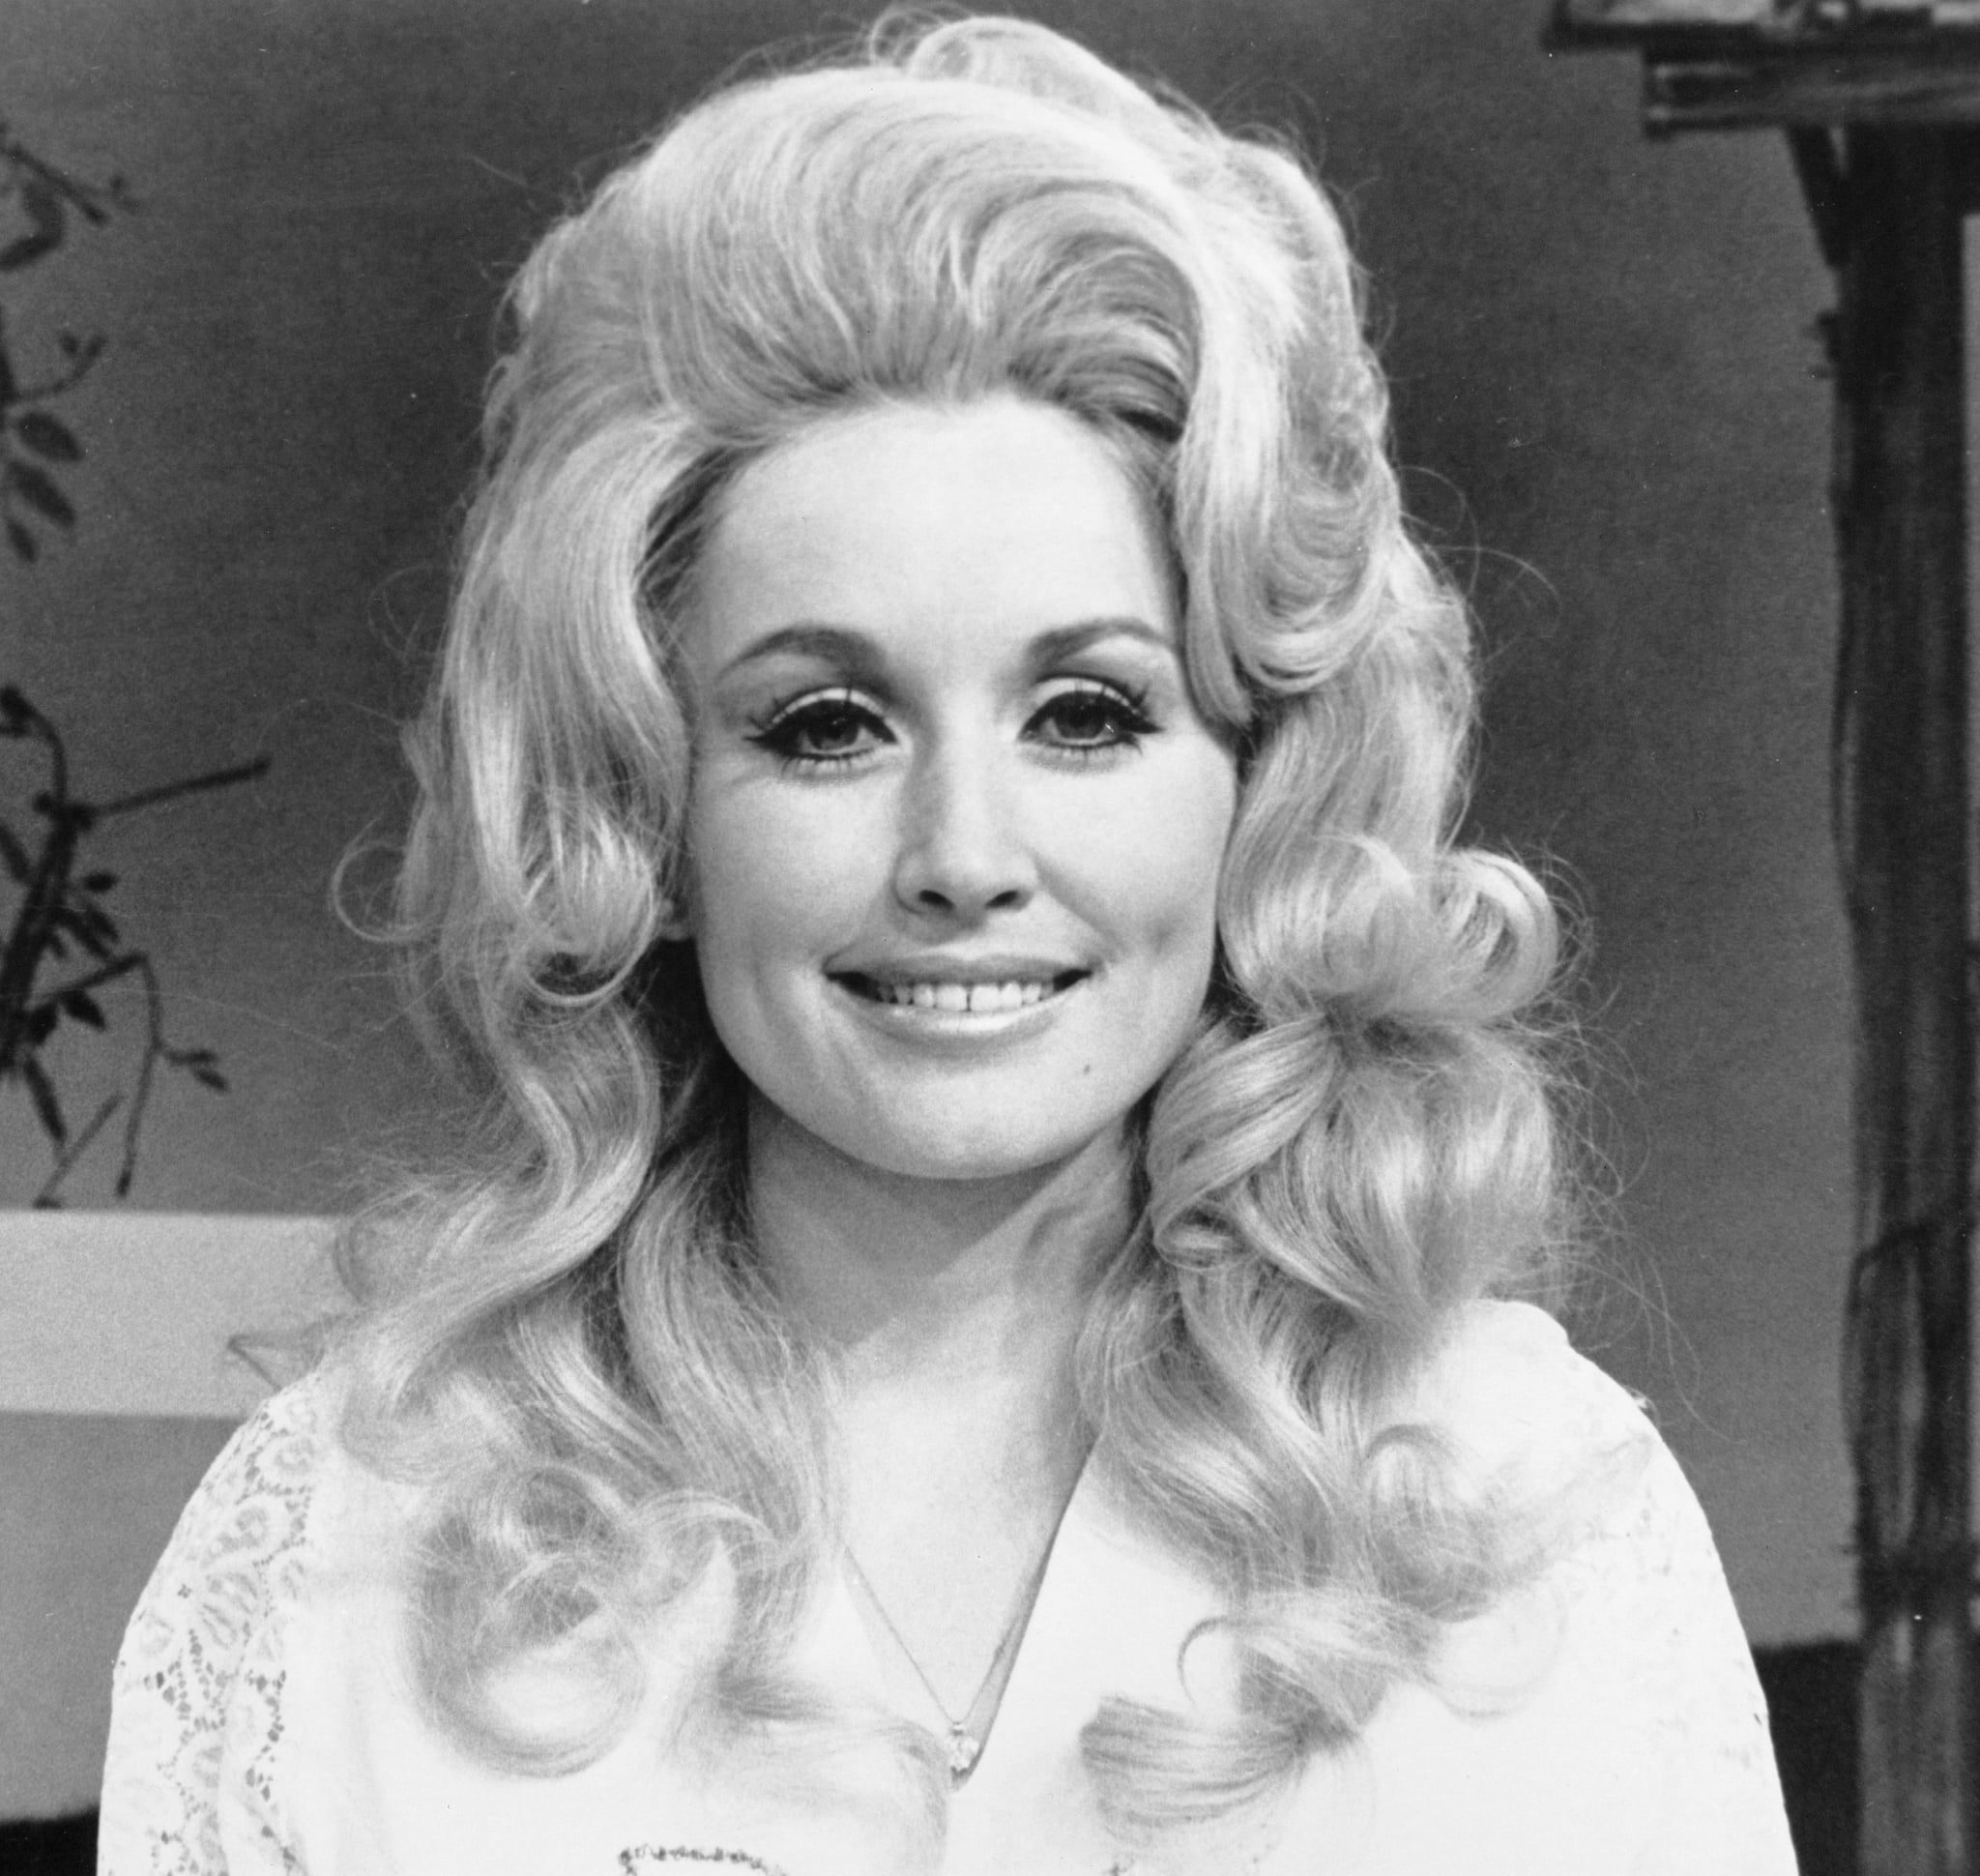 1 207 e1607944781695 20 Things You Probably Never Knew About The Fabulous Dolly Parton